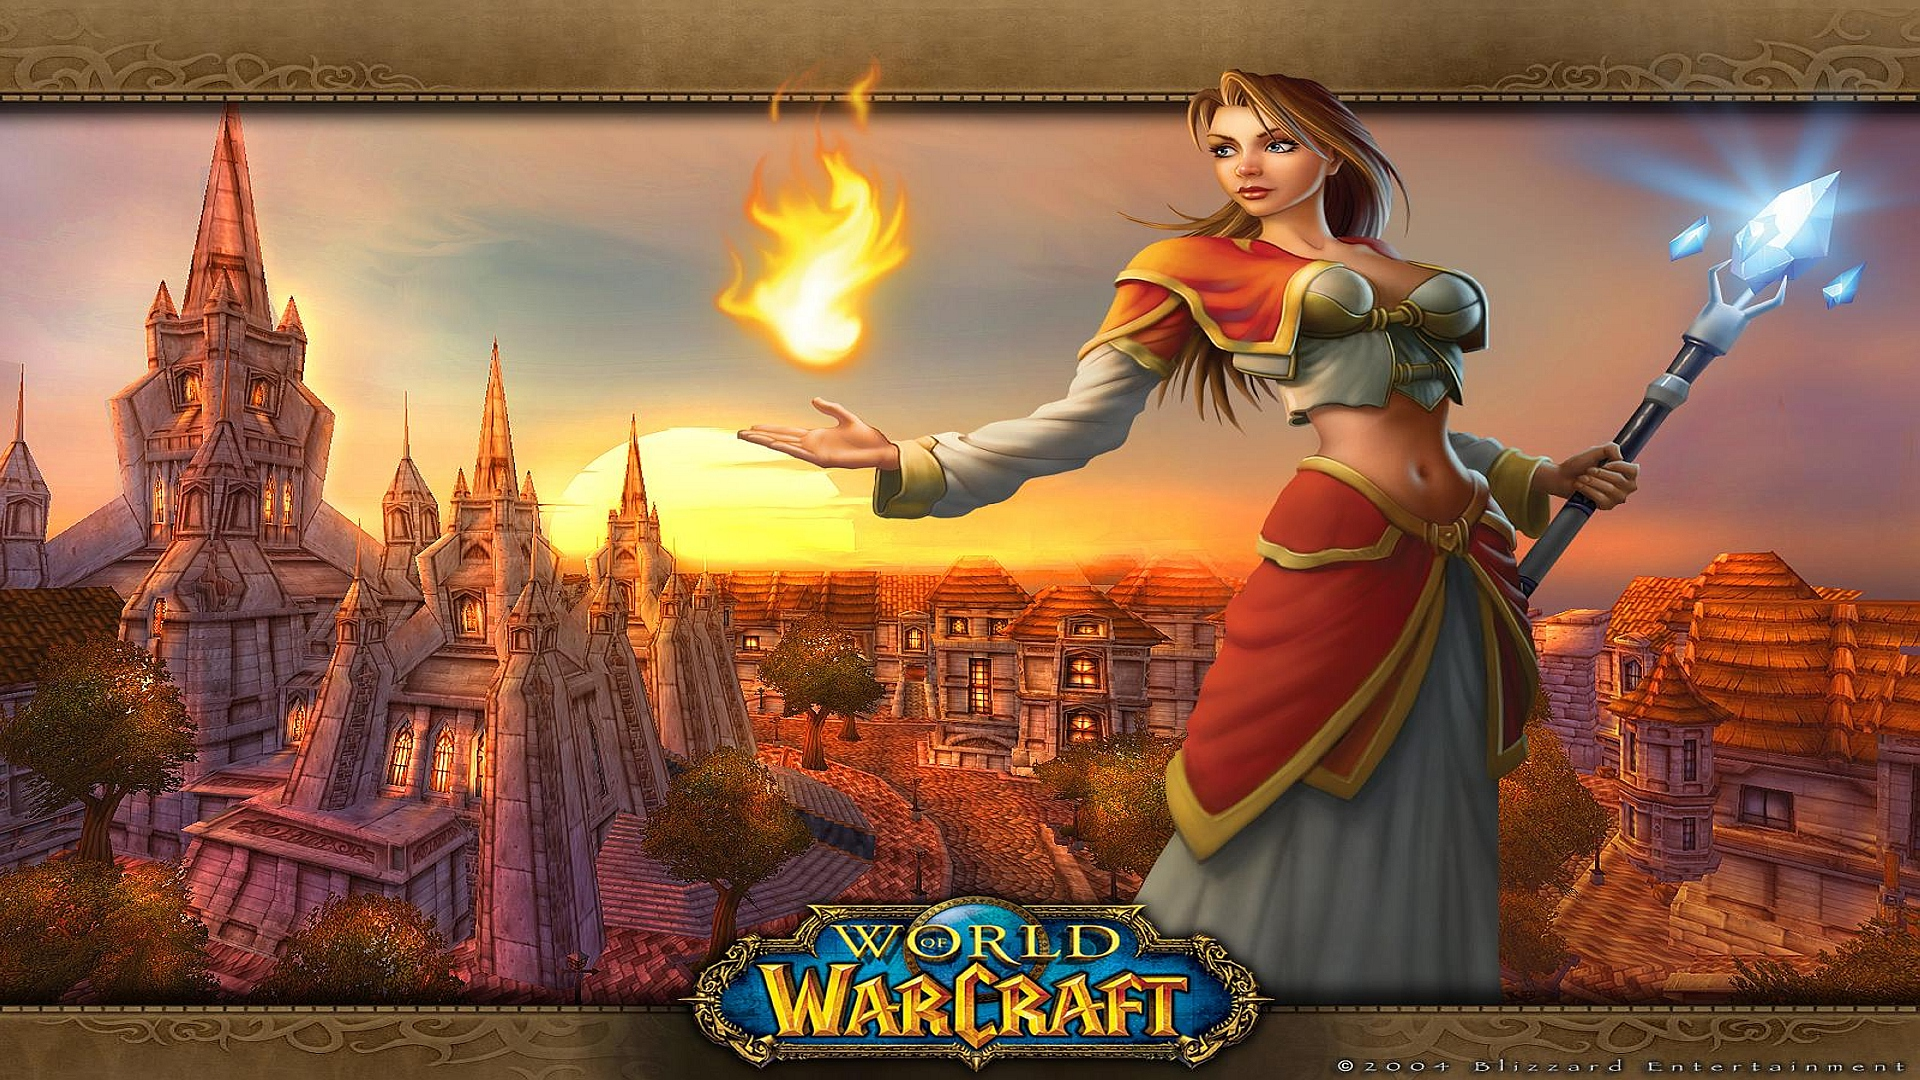 HD Wallpapers World of Warcraft Girl